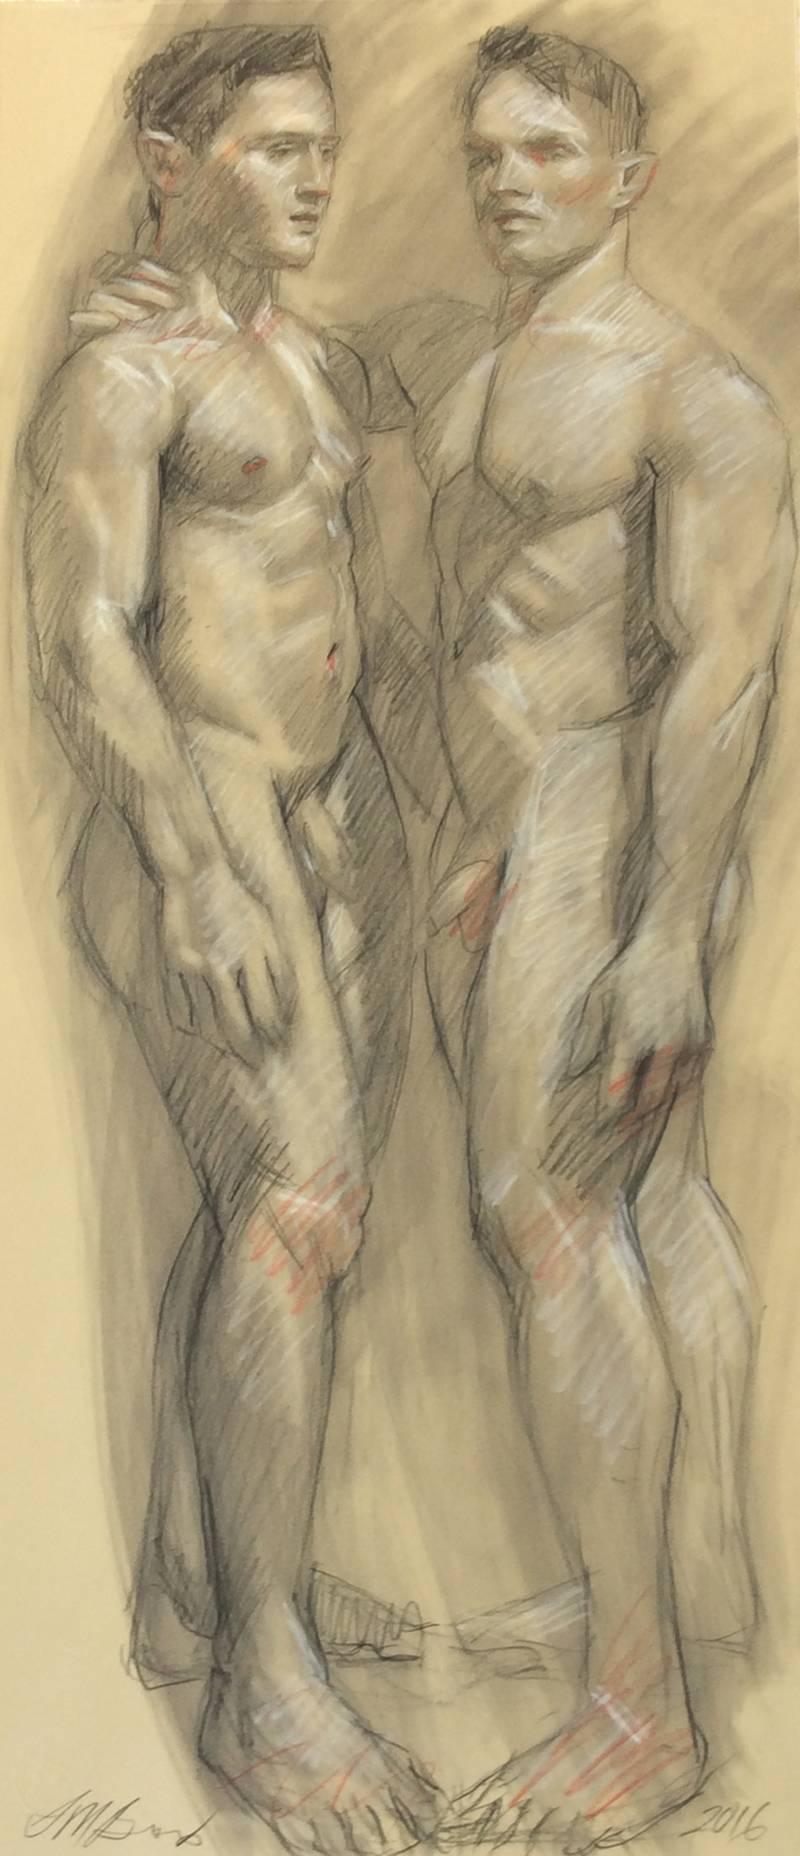 MB 808 (Figurative Charcoal Drawing on Paper of Two Male Nudes Models)